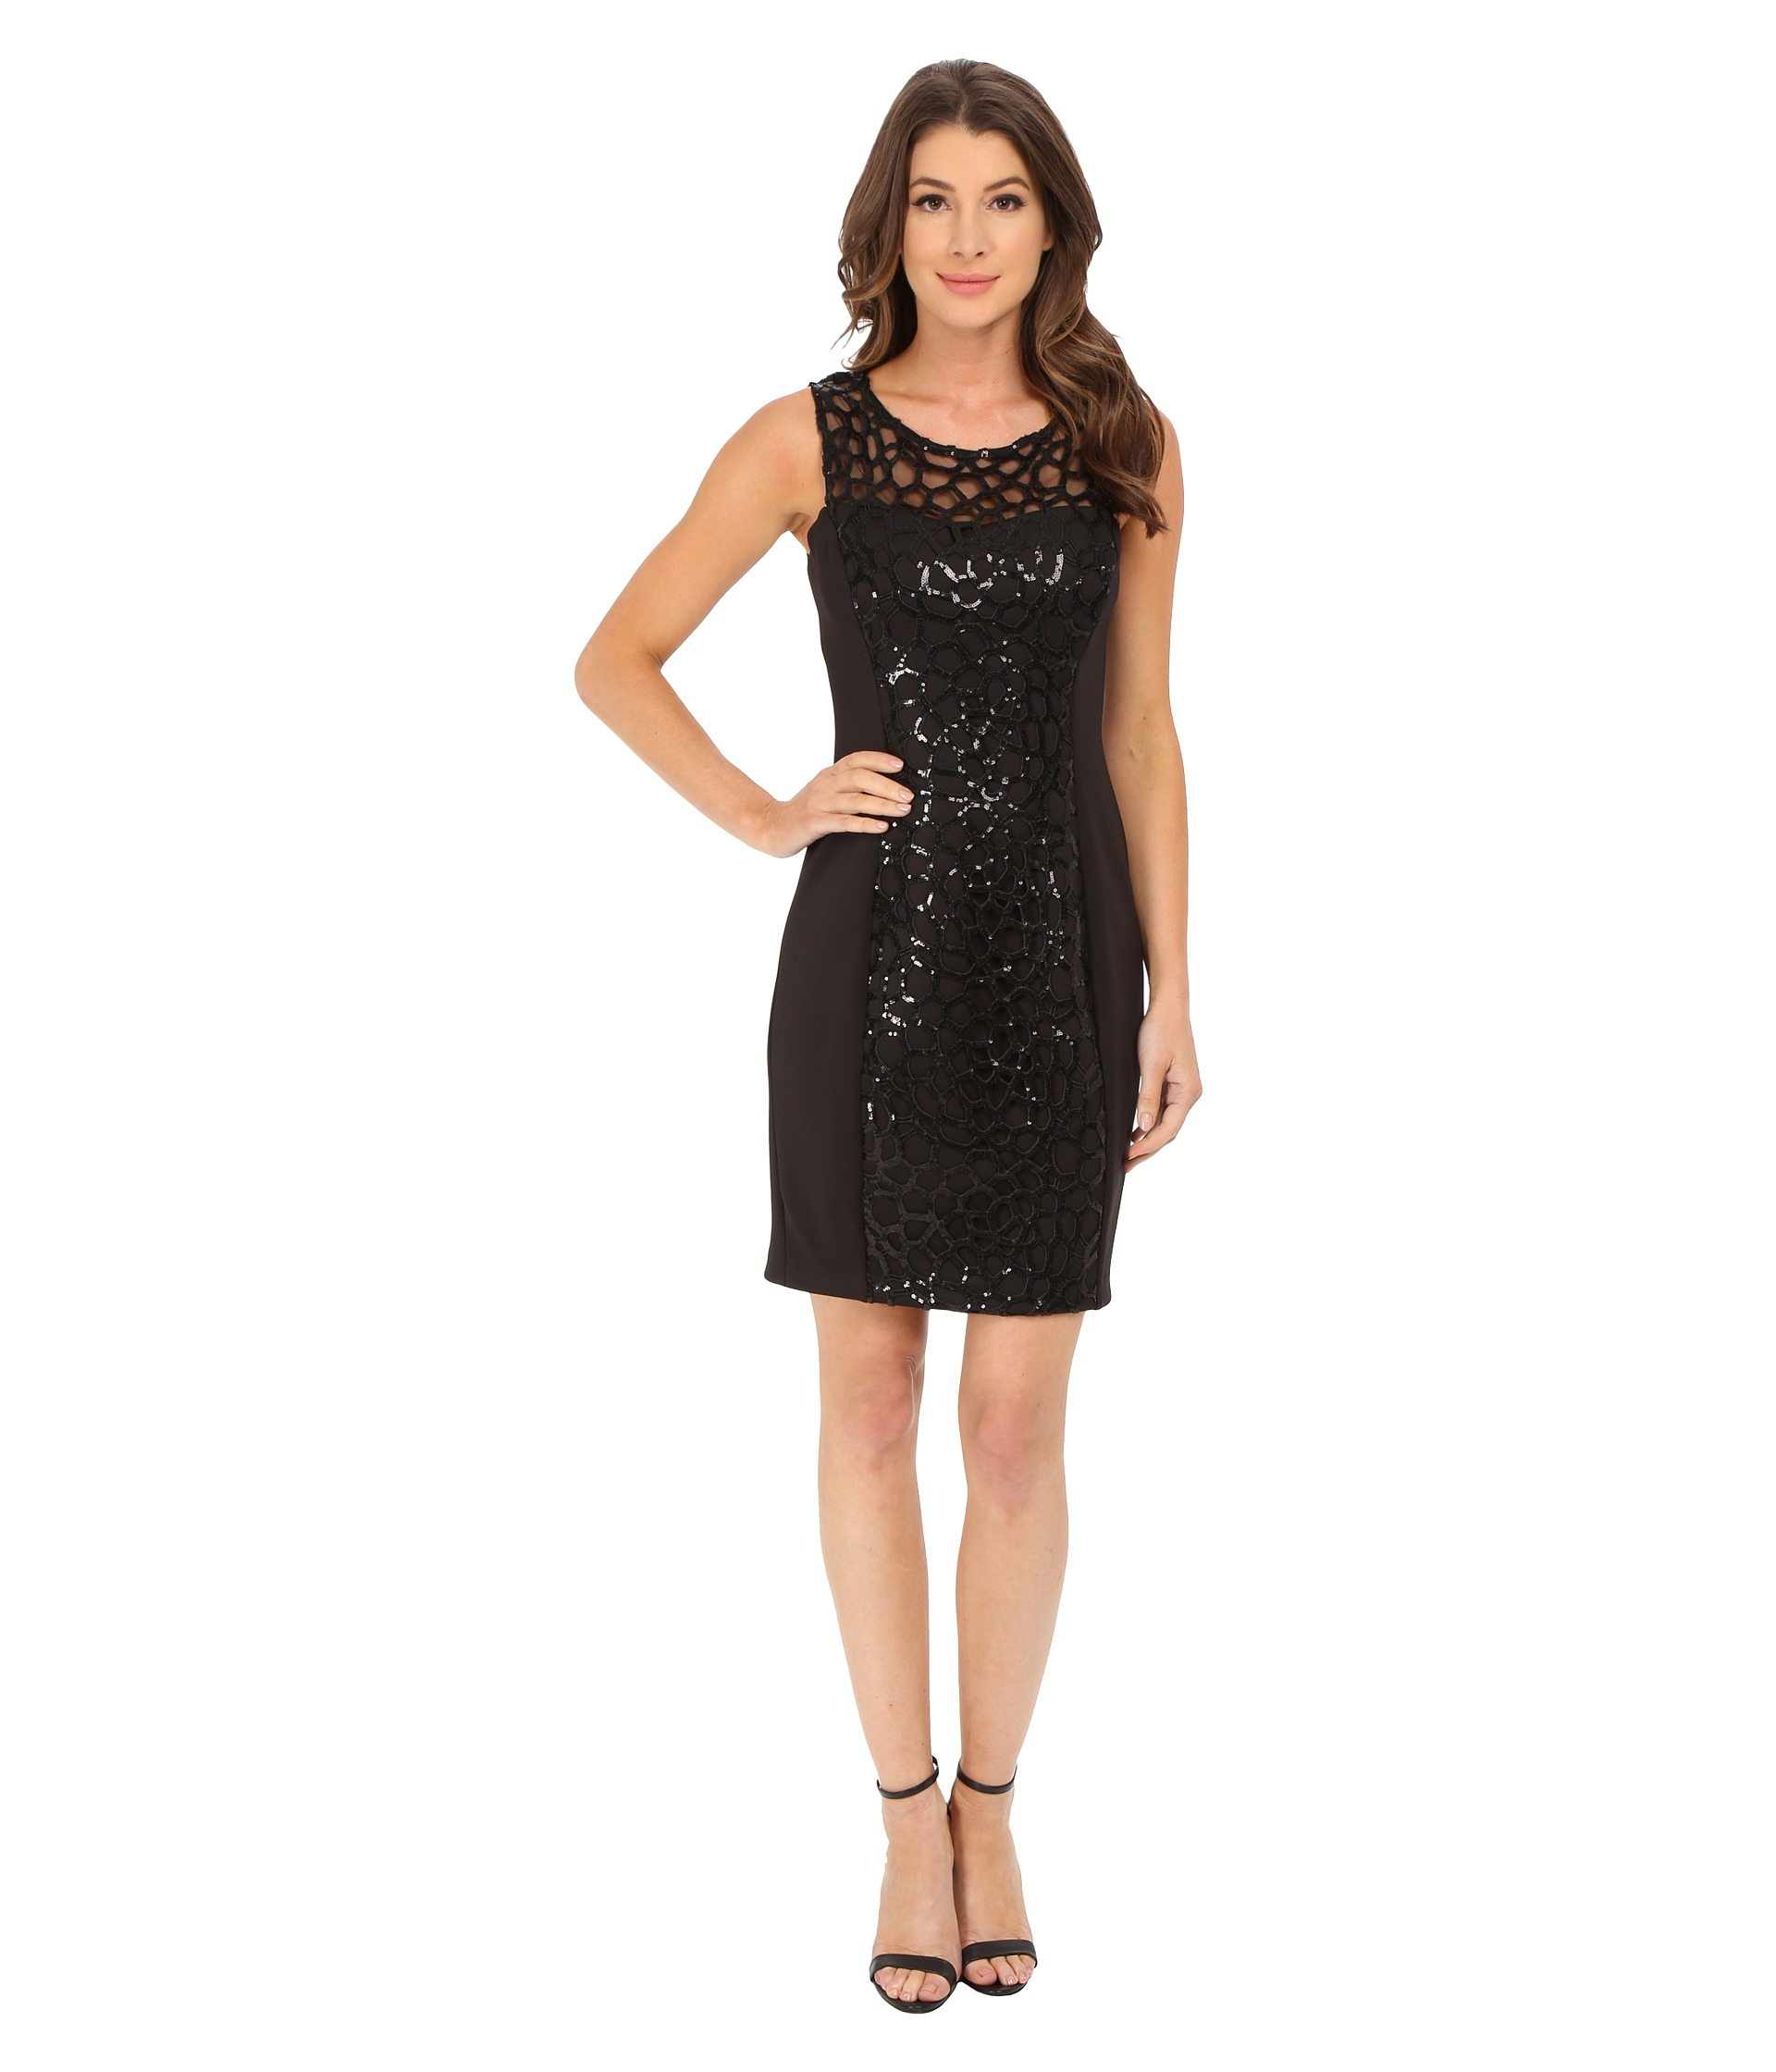 Jessica simpson Embellished Cut Out Sequin Dress in Black - Lyst